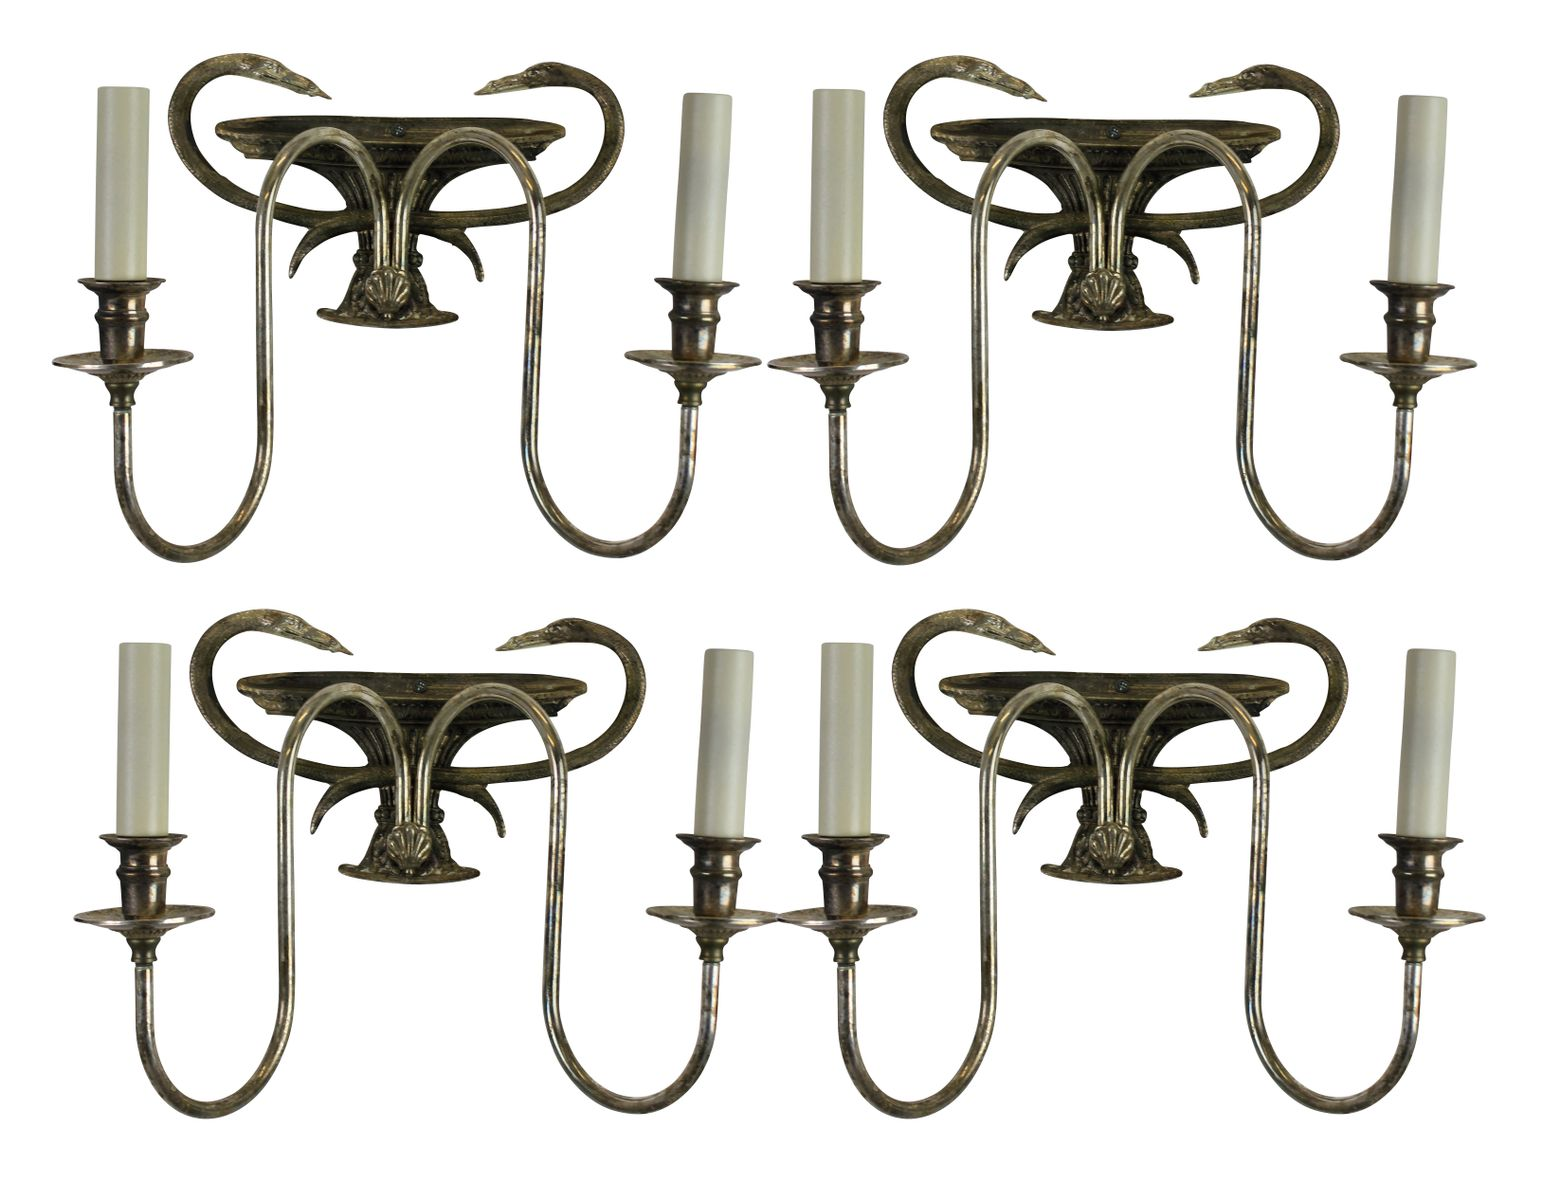 Wall Sconces Silver : French Silver Wall Sconces, 1960s, Set of 8 for sale at Pamono